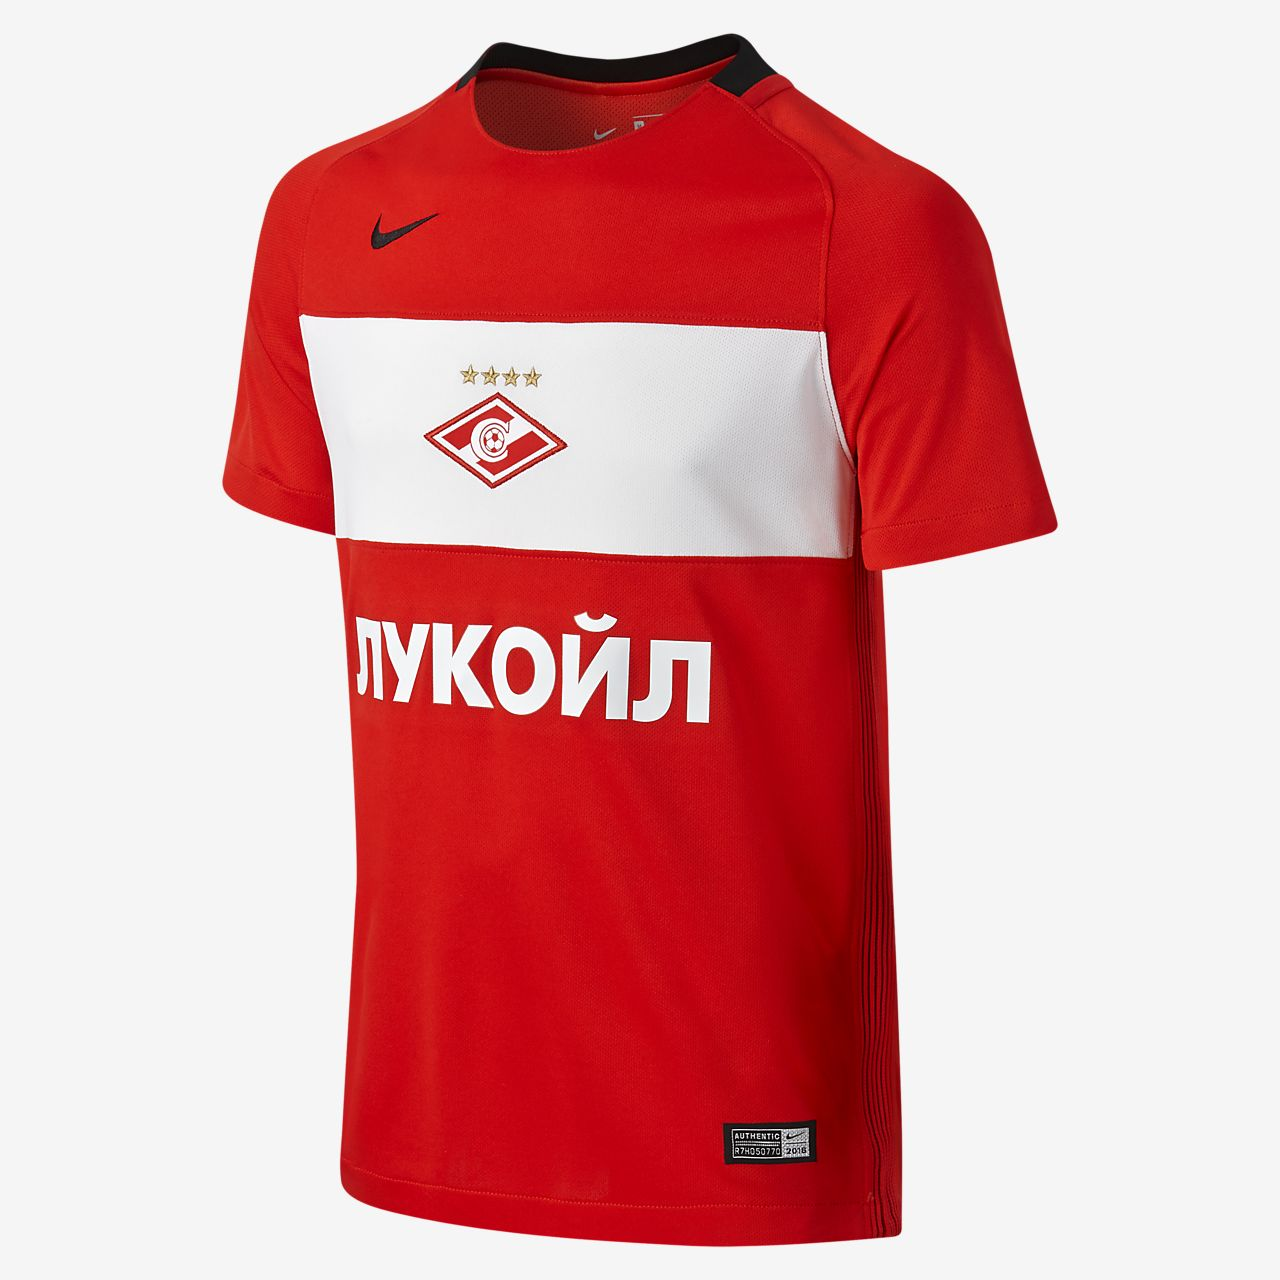 2016/17 Spartak Moscow Stadium Home Older Kids' Football Shirt (XS-XL)